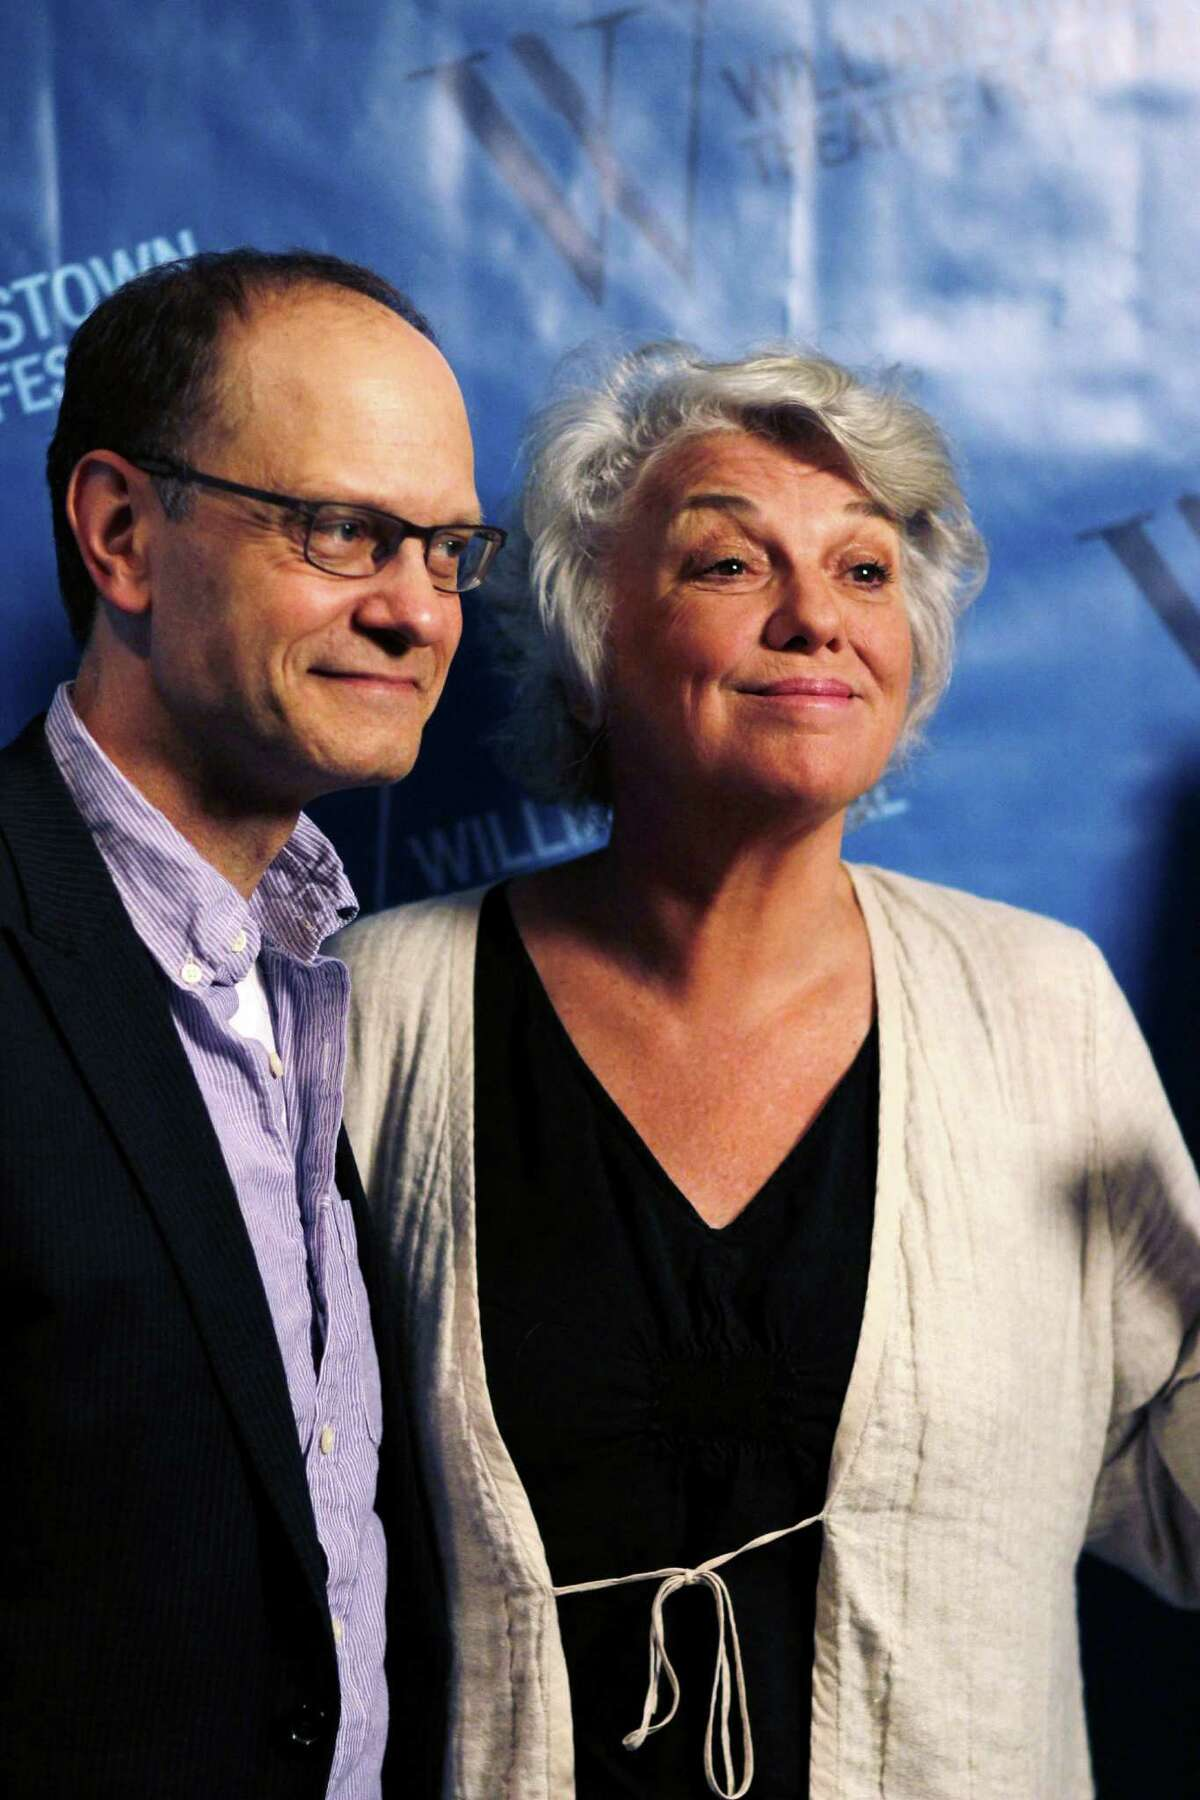 Director, David Hyde Pierce and actress Tyne Daly, pose for photos during a press availability for the upcoming Williamstown Theatre Festival, Tuesday evening, June 19, 2012 in Williamstown, Mass. This year's festivals includes productions of